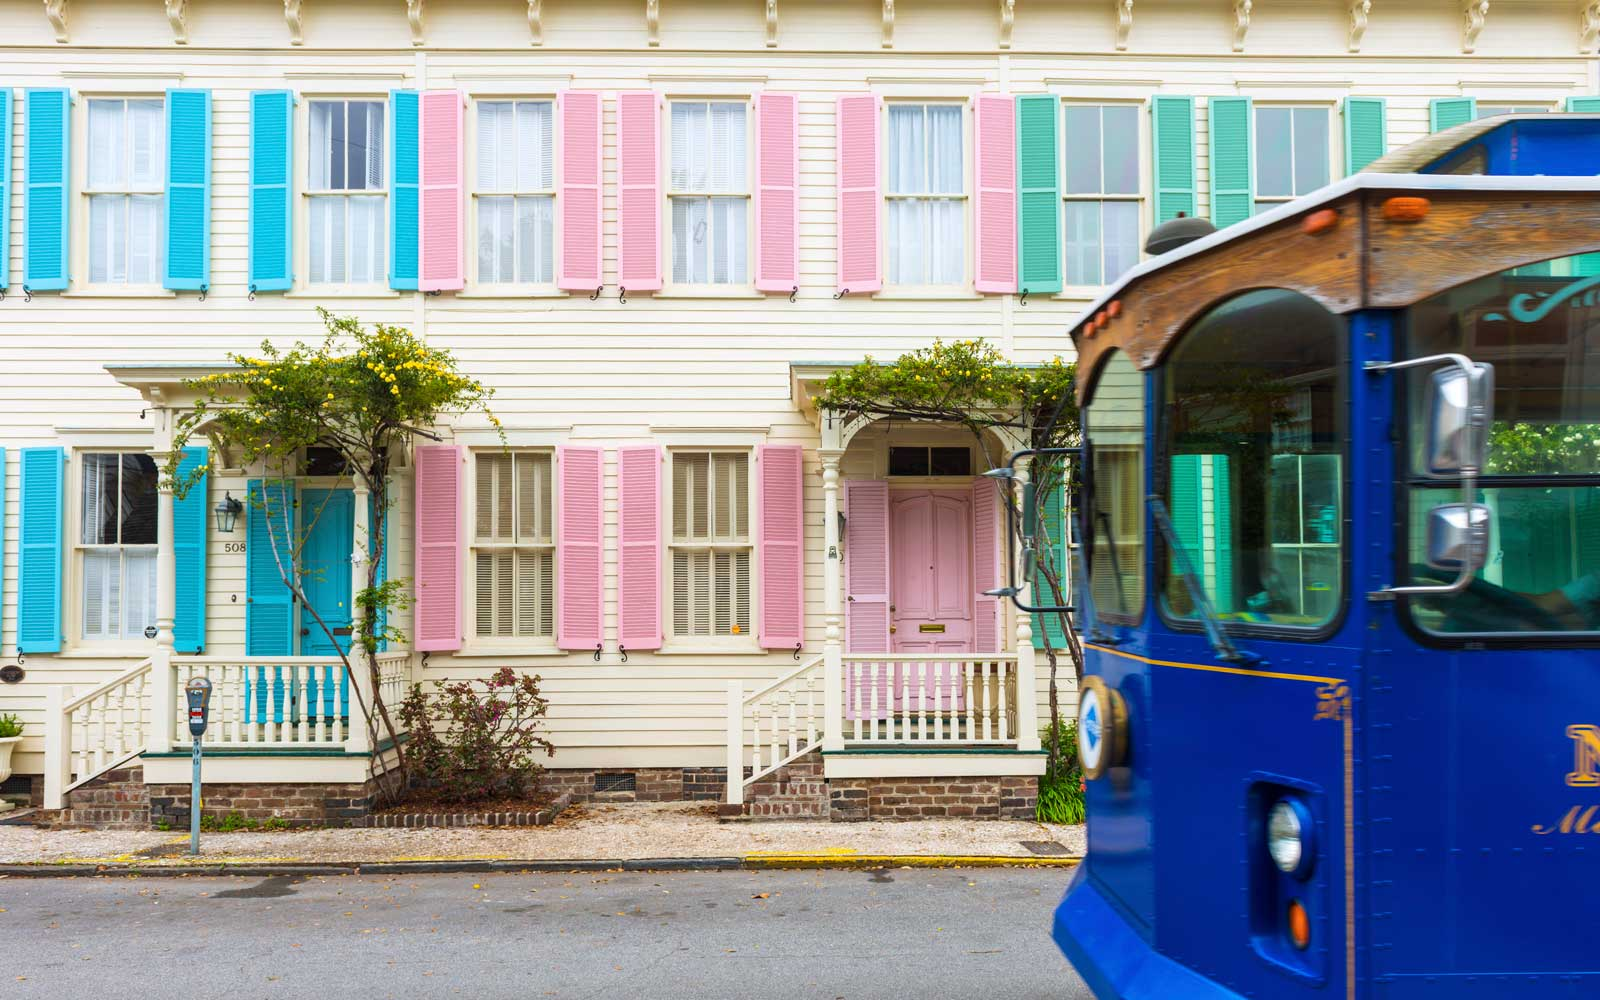 Savannah Trolley past a row of colourful houses